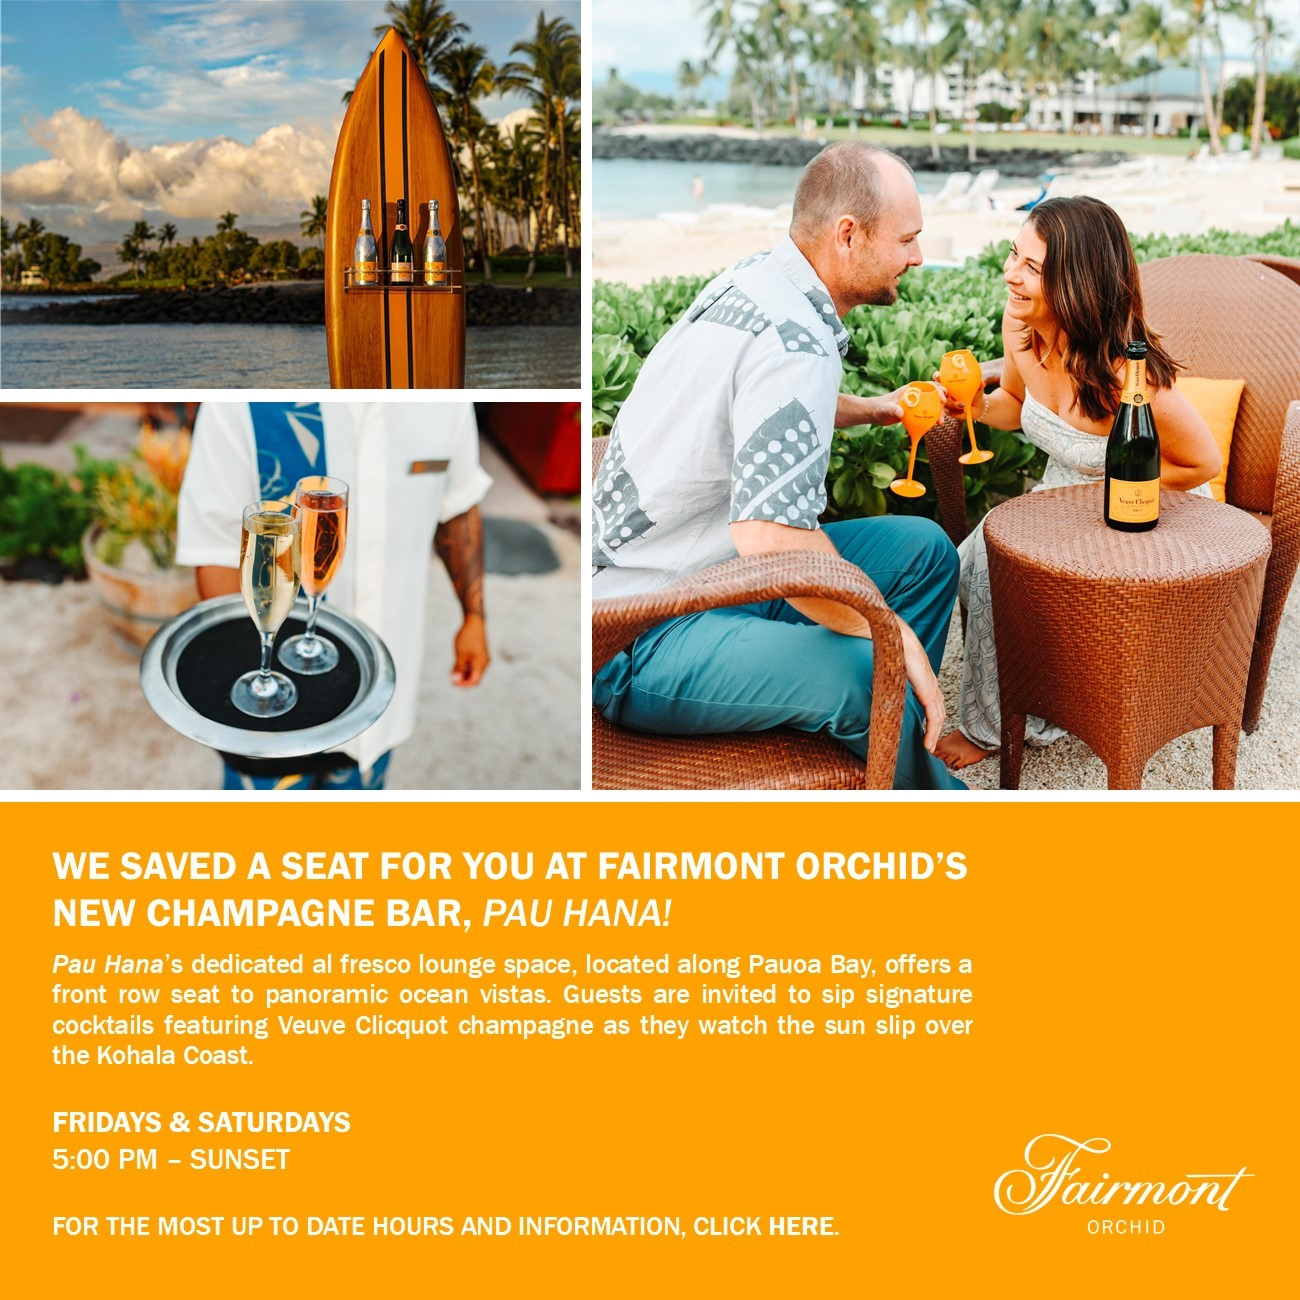 Fairmont-Orchid_pau_hana_ad-April21.jpg